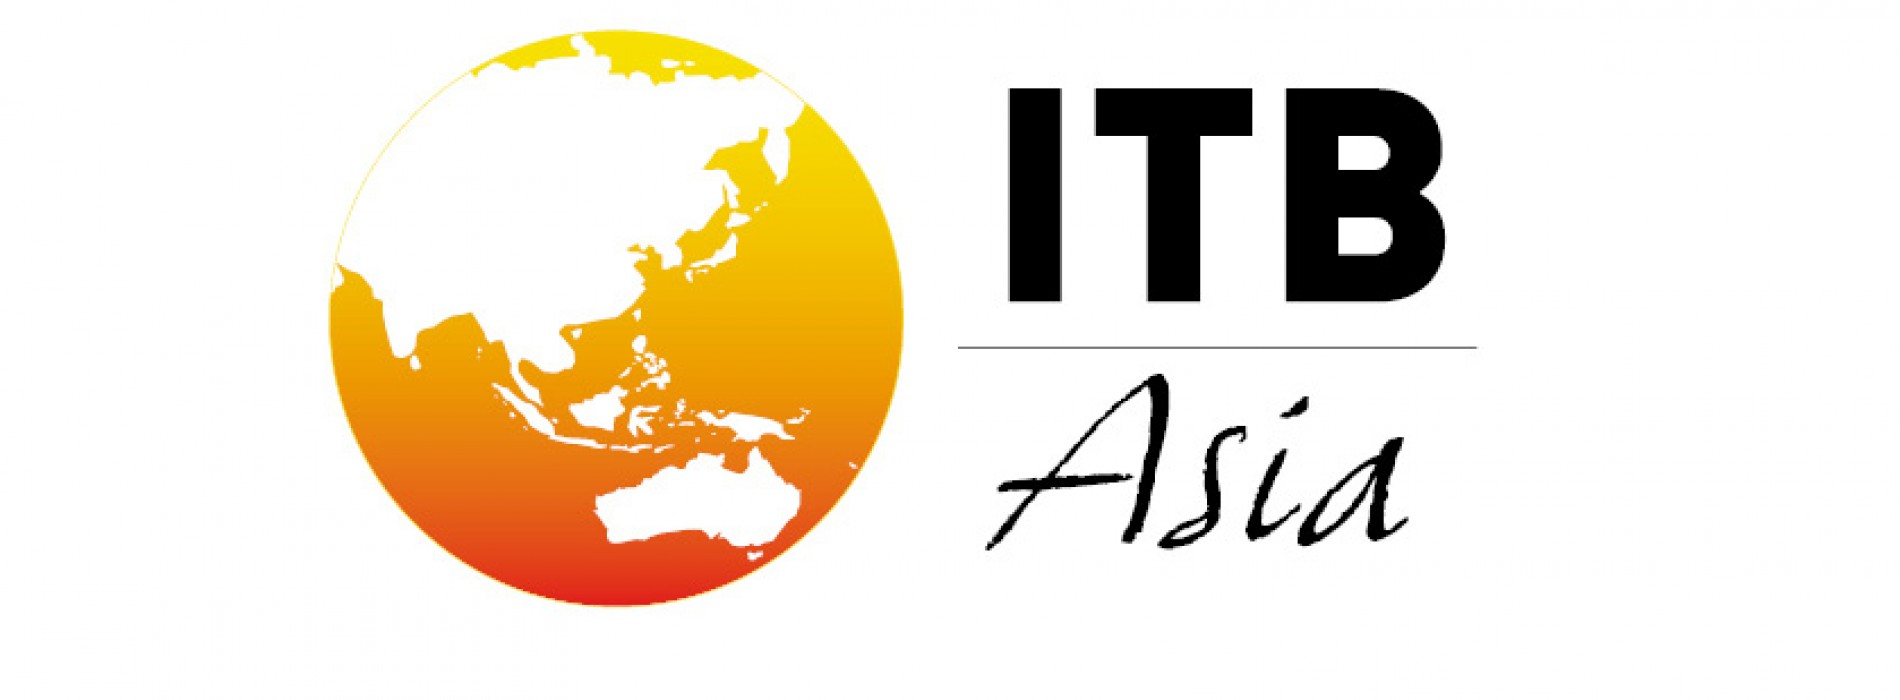 AI, biometrics and blockchain to dominate discussion at ITB Asia 2018